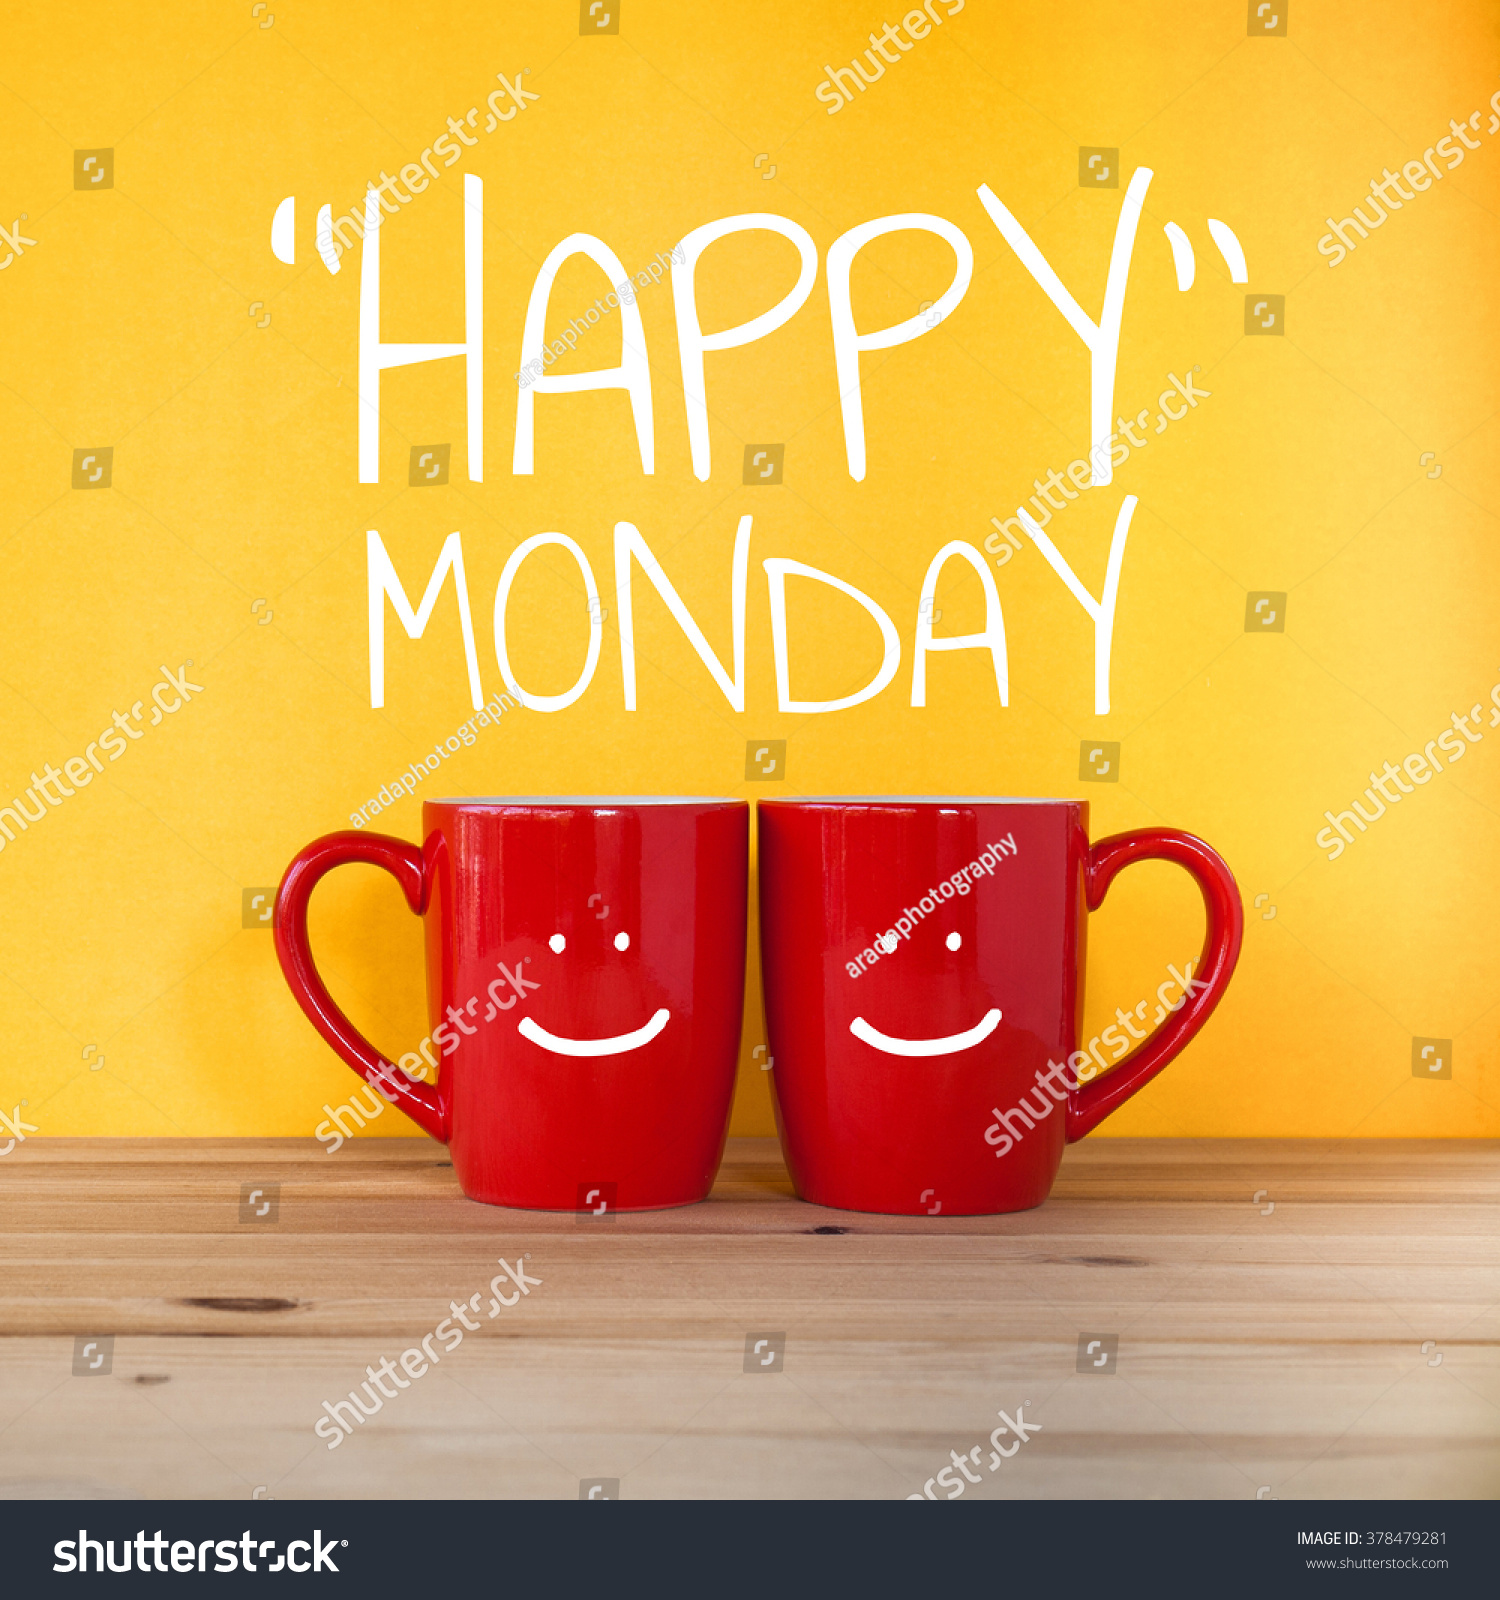 https://image.shutterstock.com/z/stock-photo-happy-monday-word-two-cups-of-coffee-and-stand-together-to-be-heart-shape-on-yellow-background-378479281.jpg